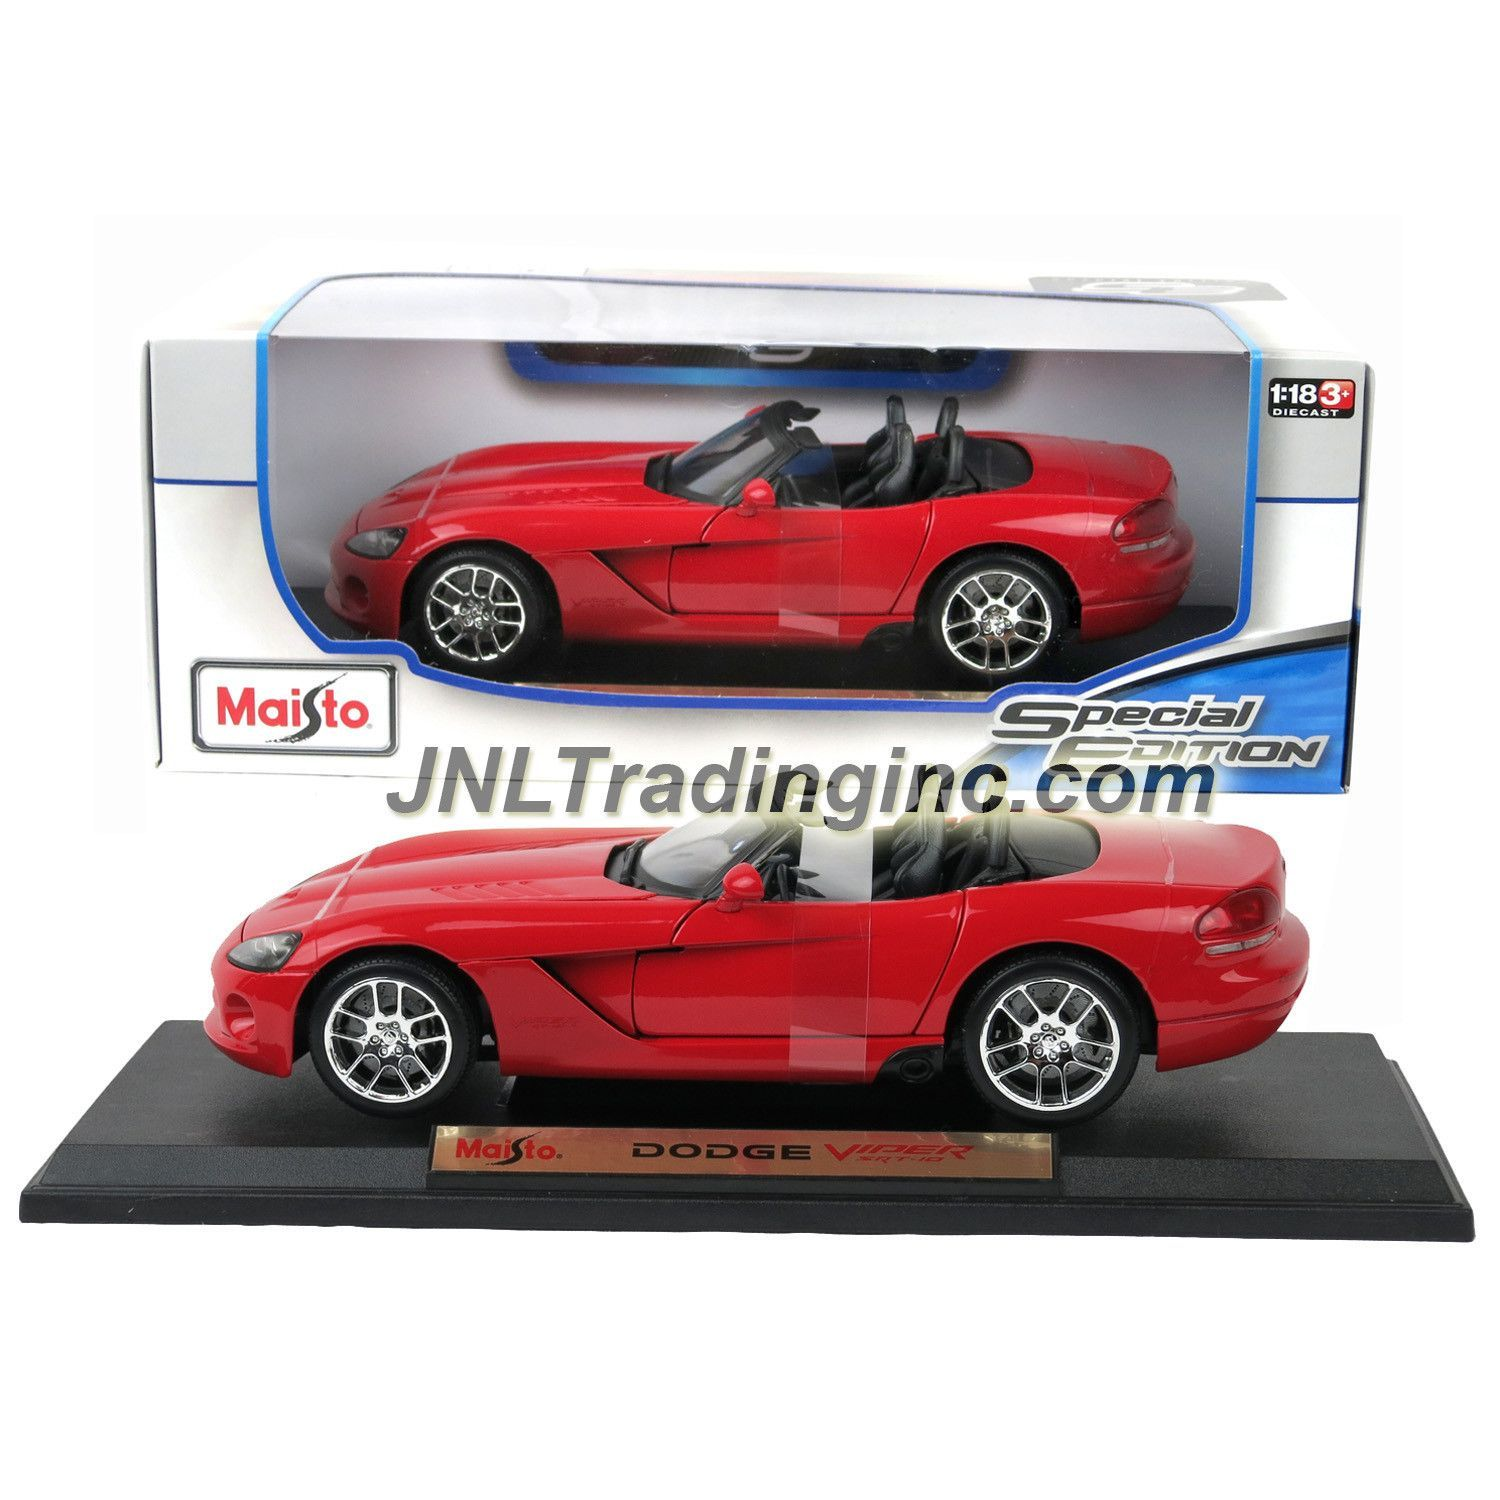 Maisto special edition series 1 18 scale die cast car red color sports coupe